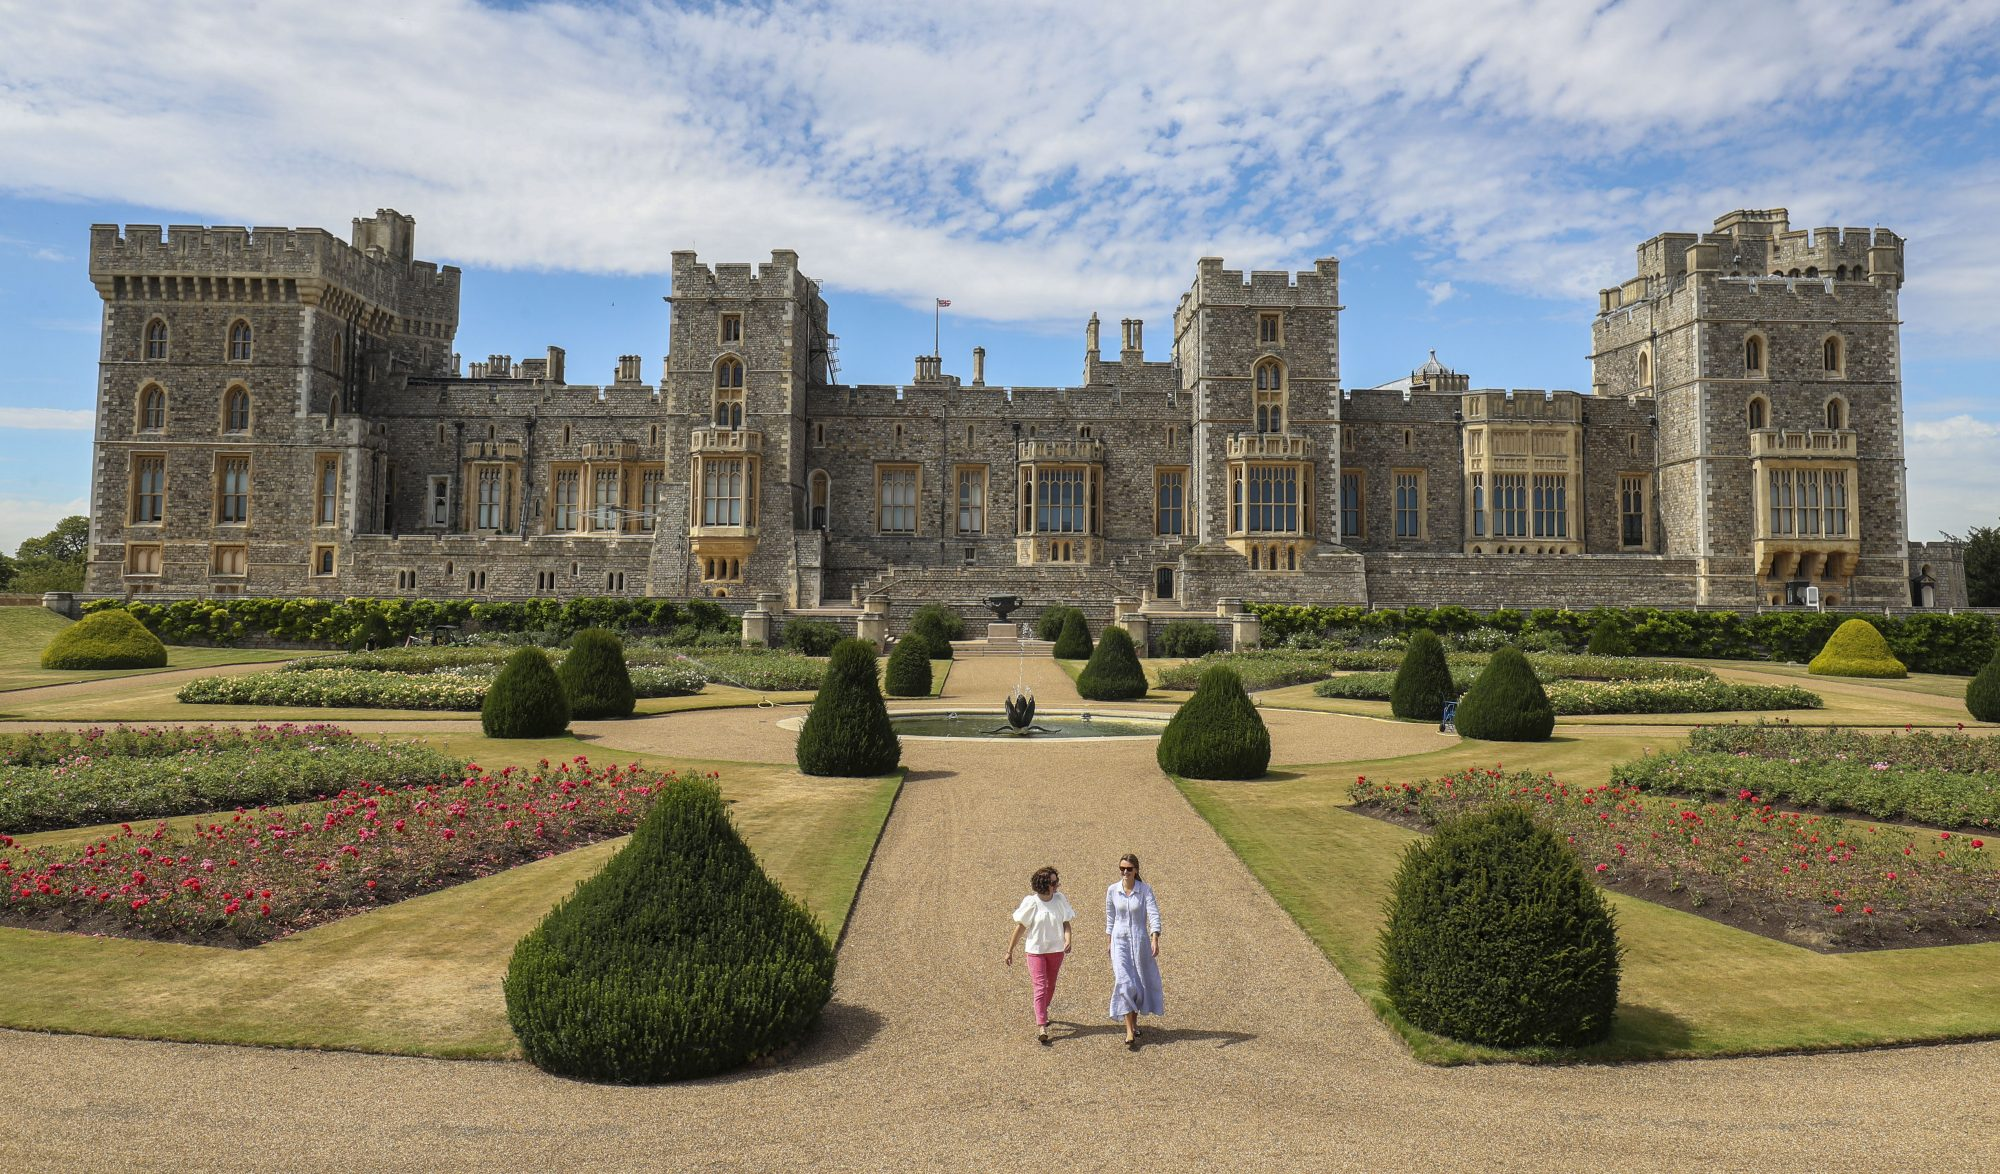 Windsor Castle's East Terrace Garden with people walking past the flowers and fountain